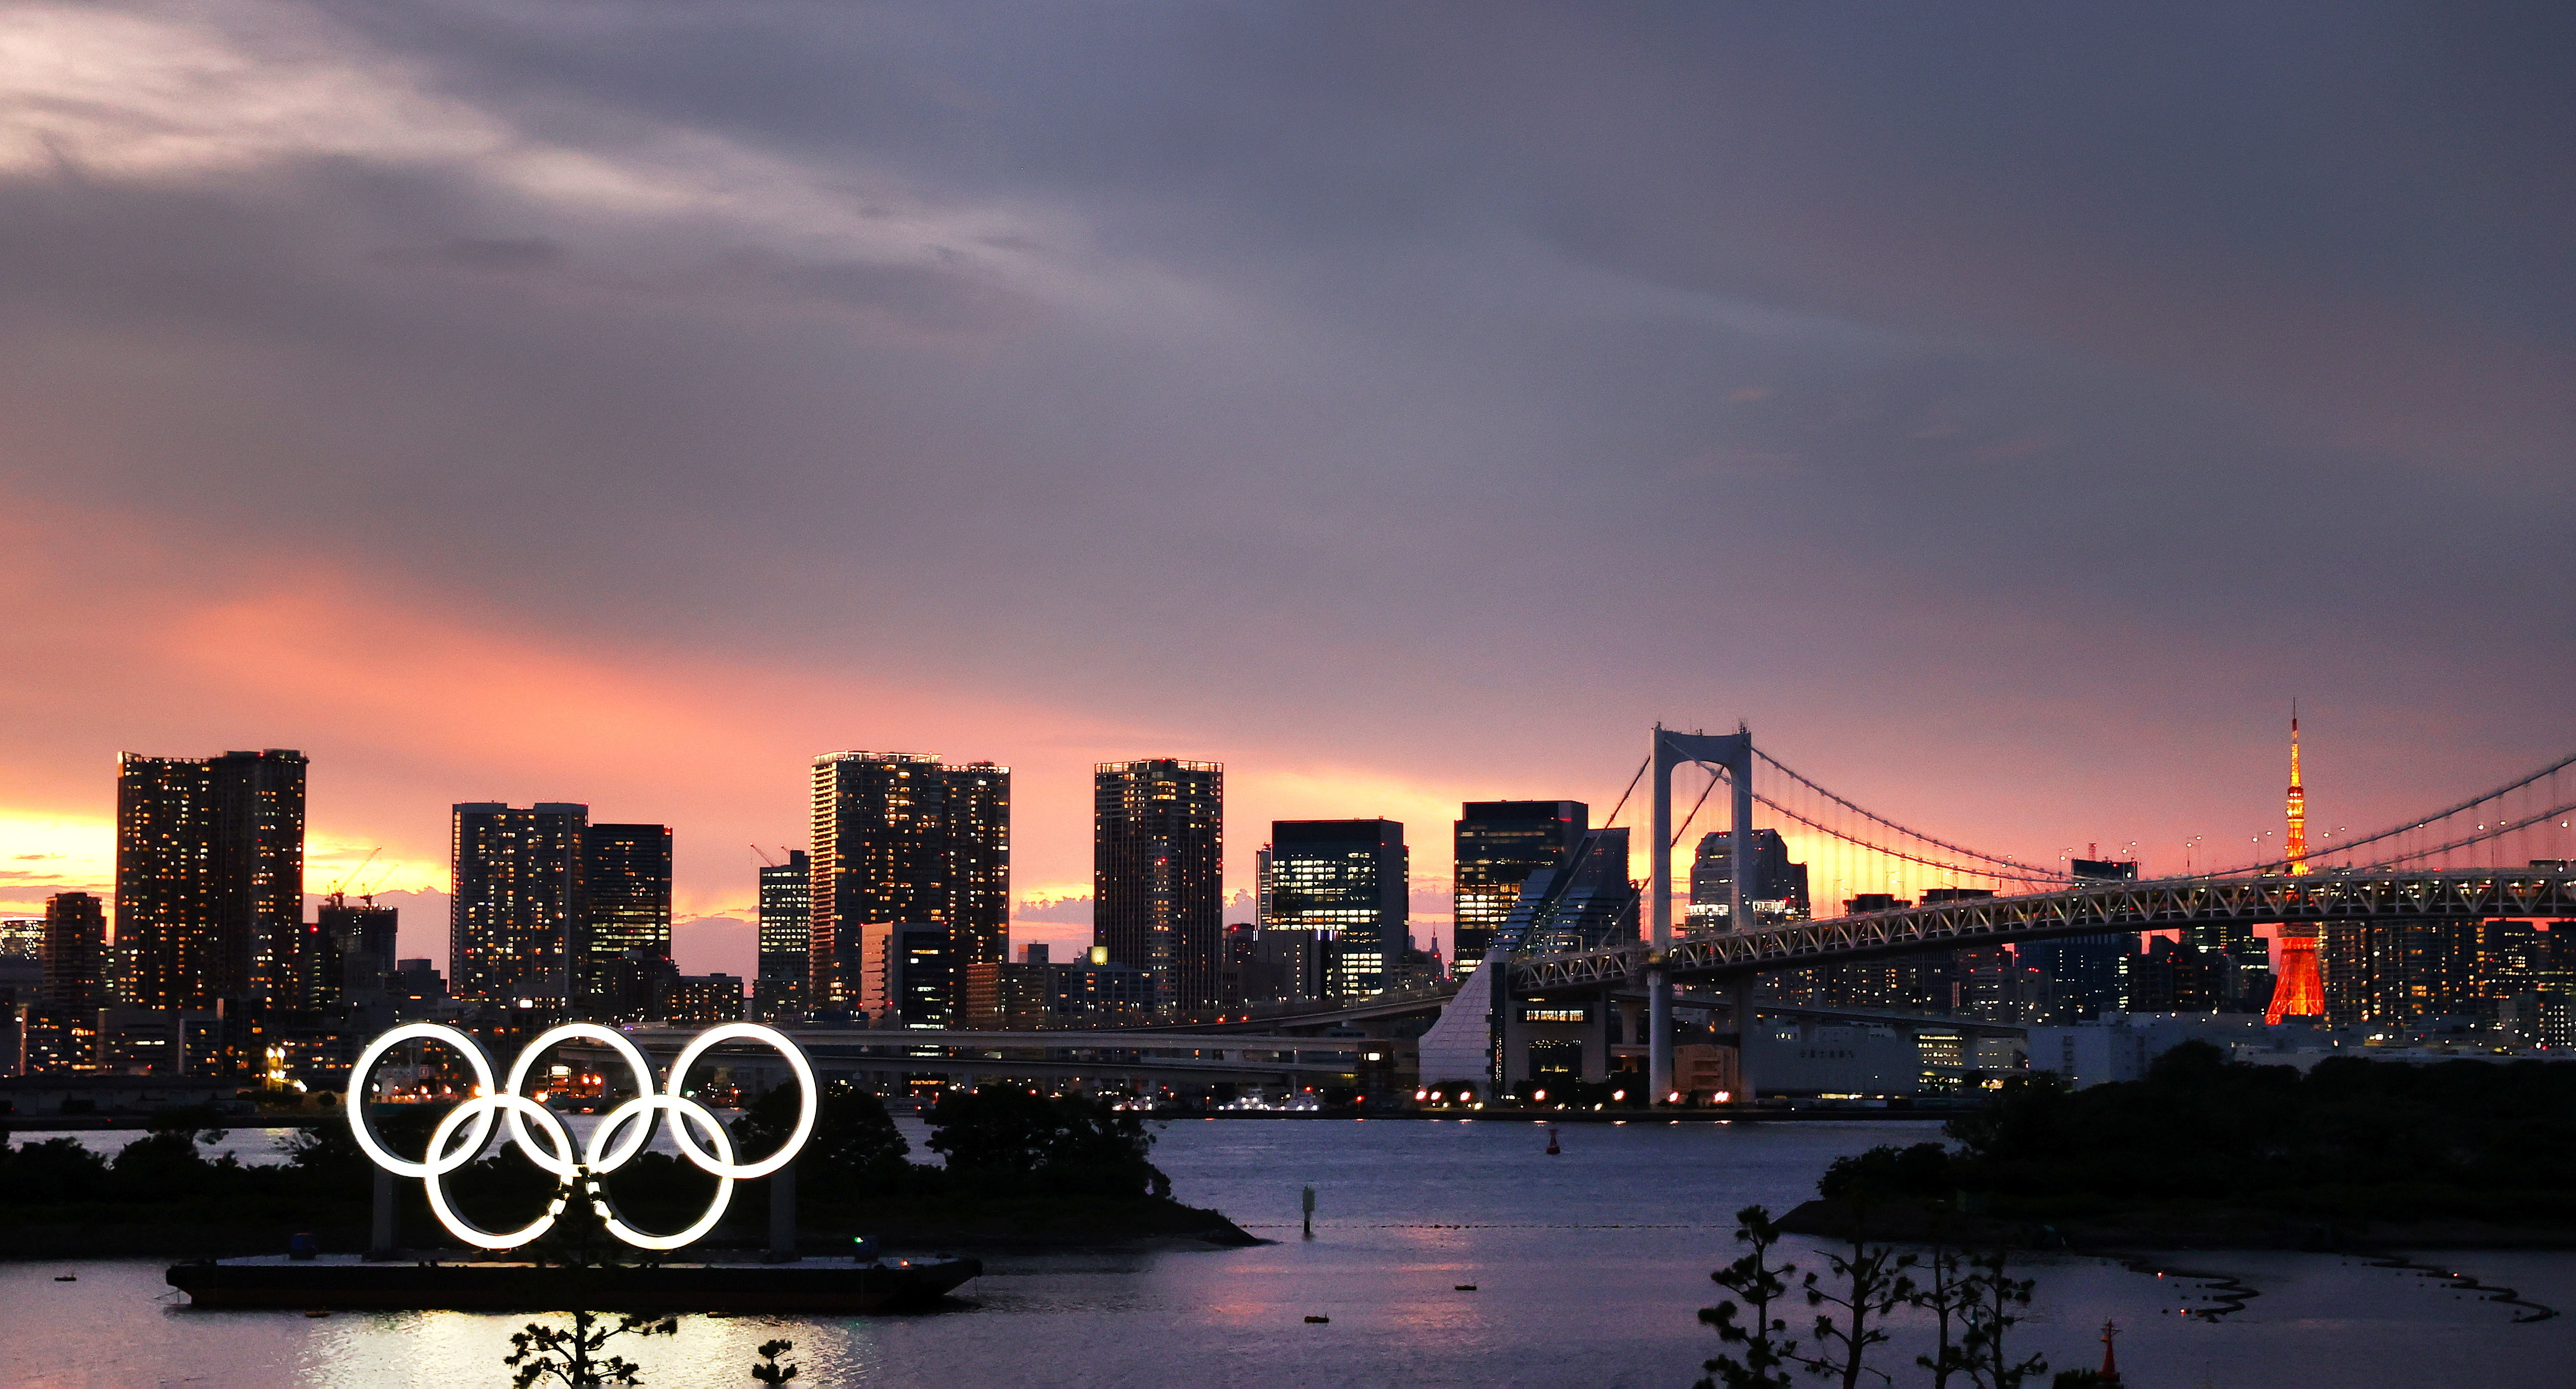 The Olympic Rings are seen in front of the skyline during sunset, three days ahead of the official opening of the Tokyo 2020 Olympic Games, in Tokyo, Japan, July 20, 2021.   REUTERS/Kai Pfaffenbach - RC2BOO9B9LCW